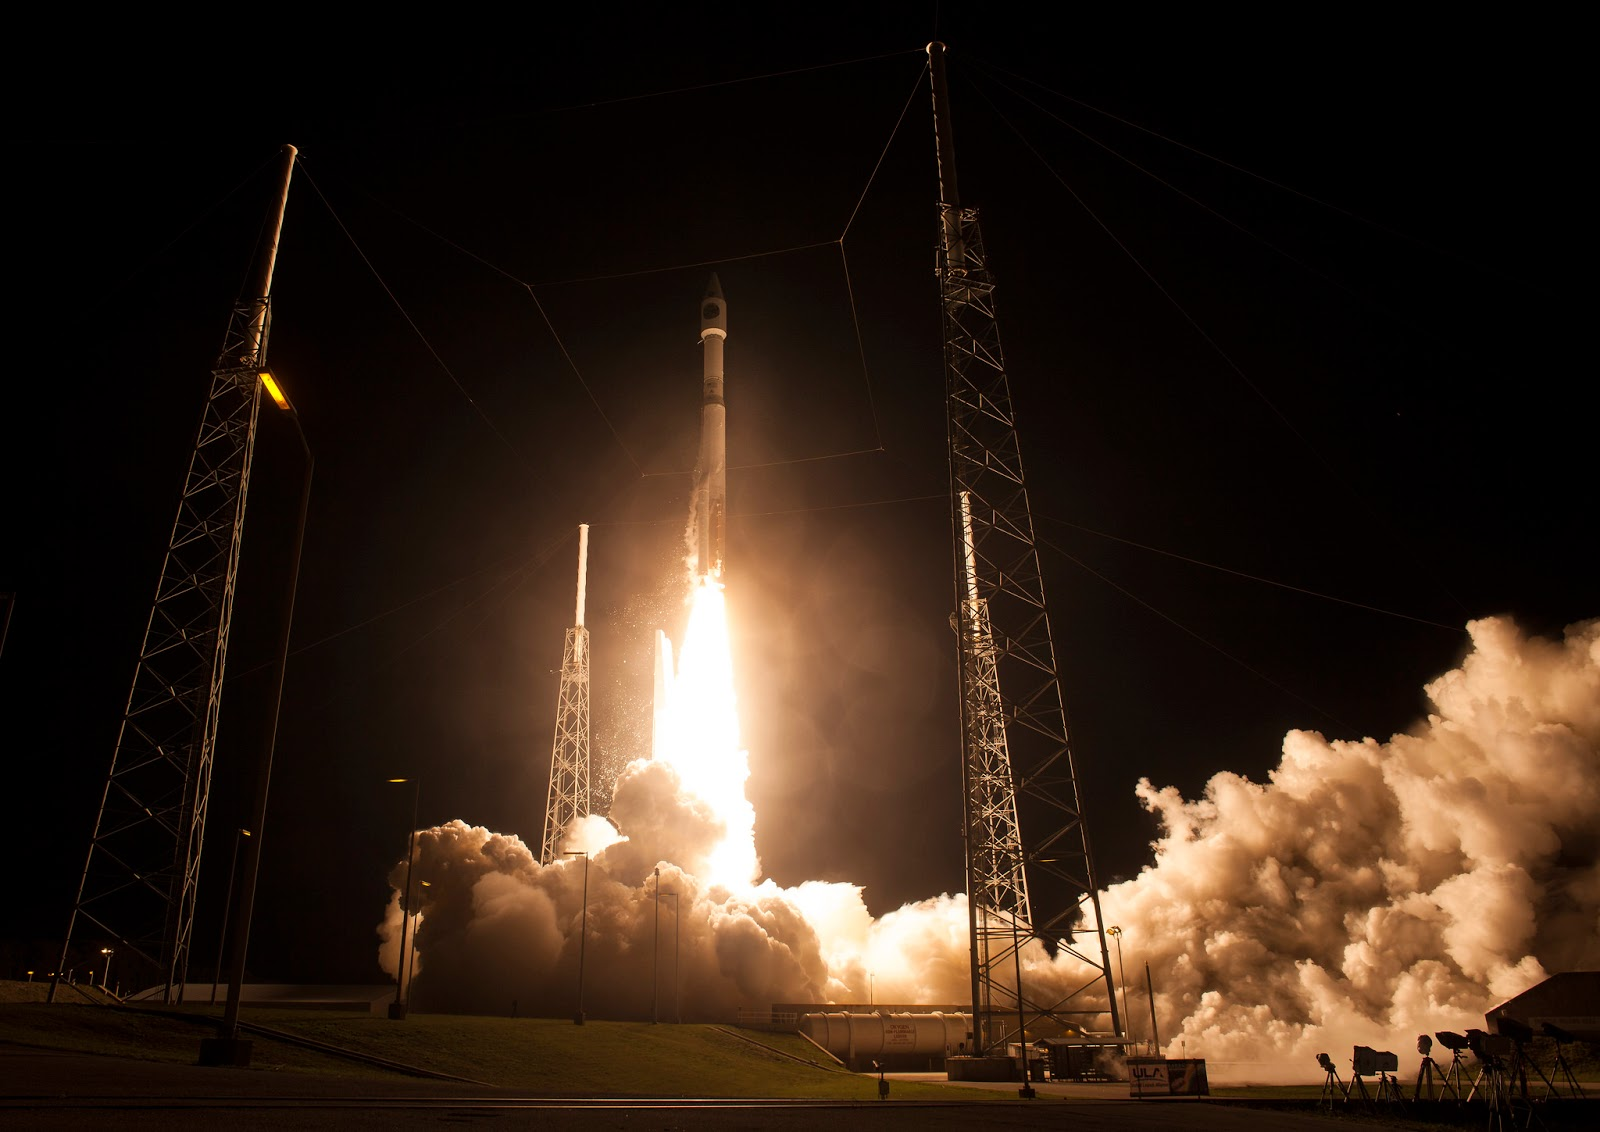 Physics Buzz Sights And Sounds From A Nasa Rocket Launch